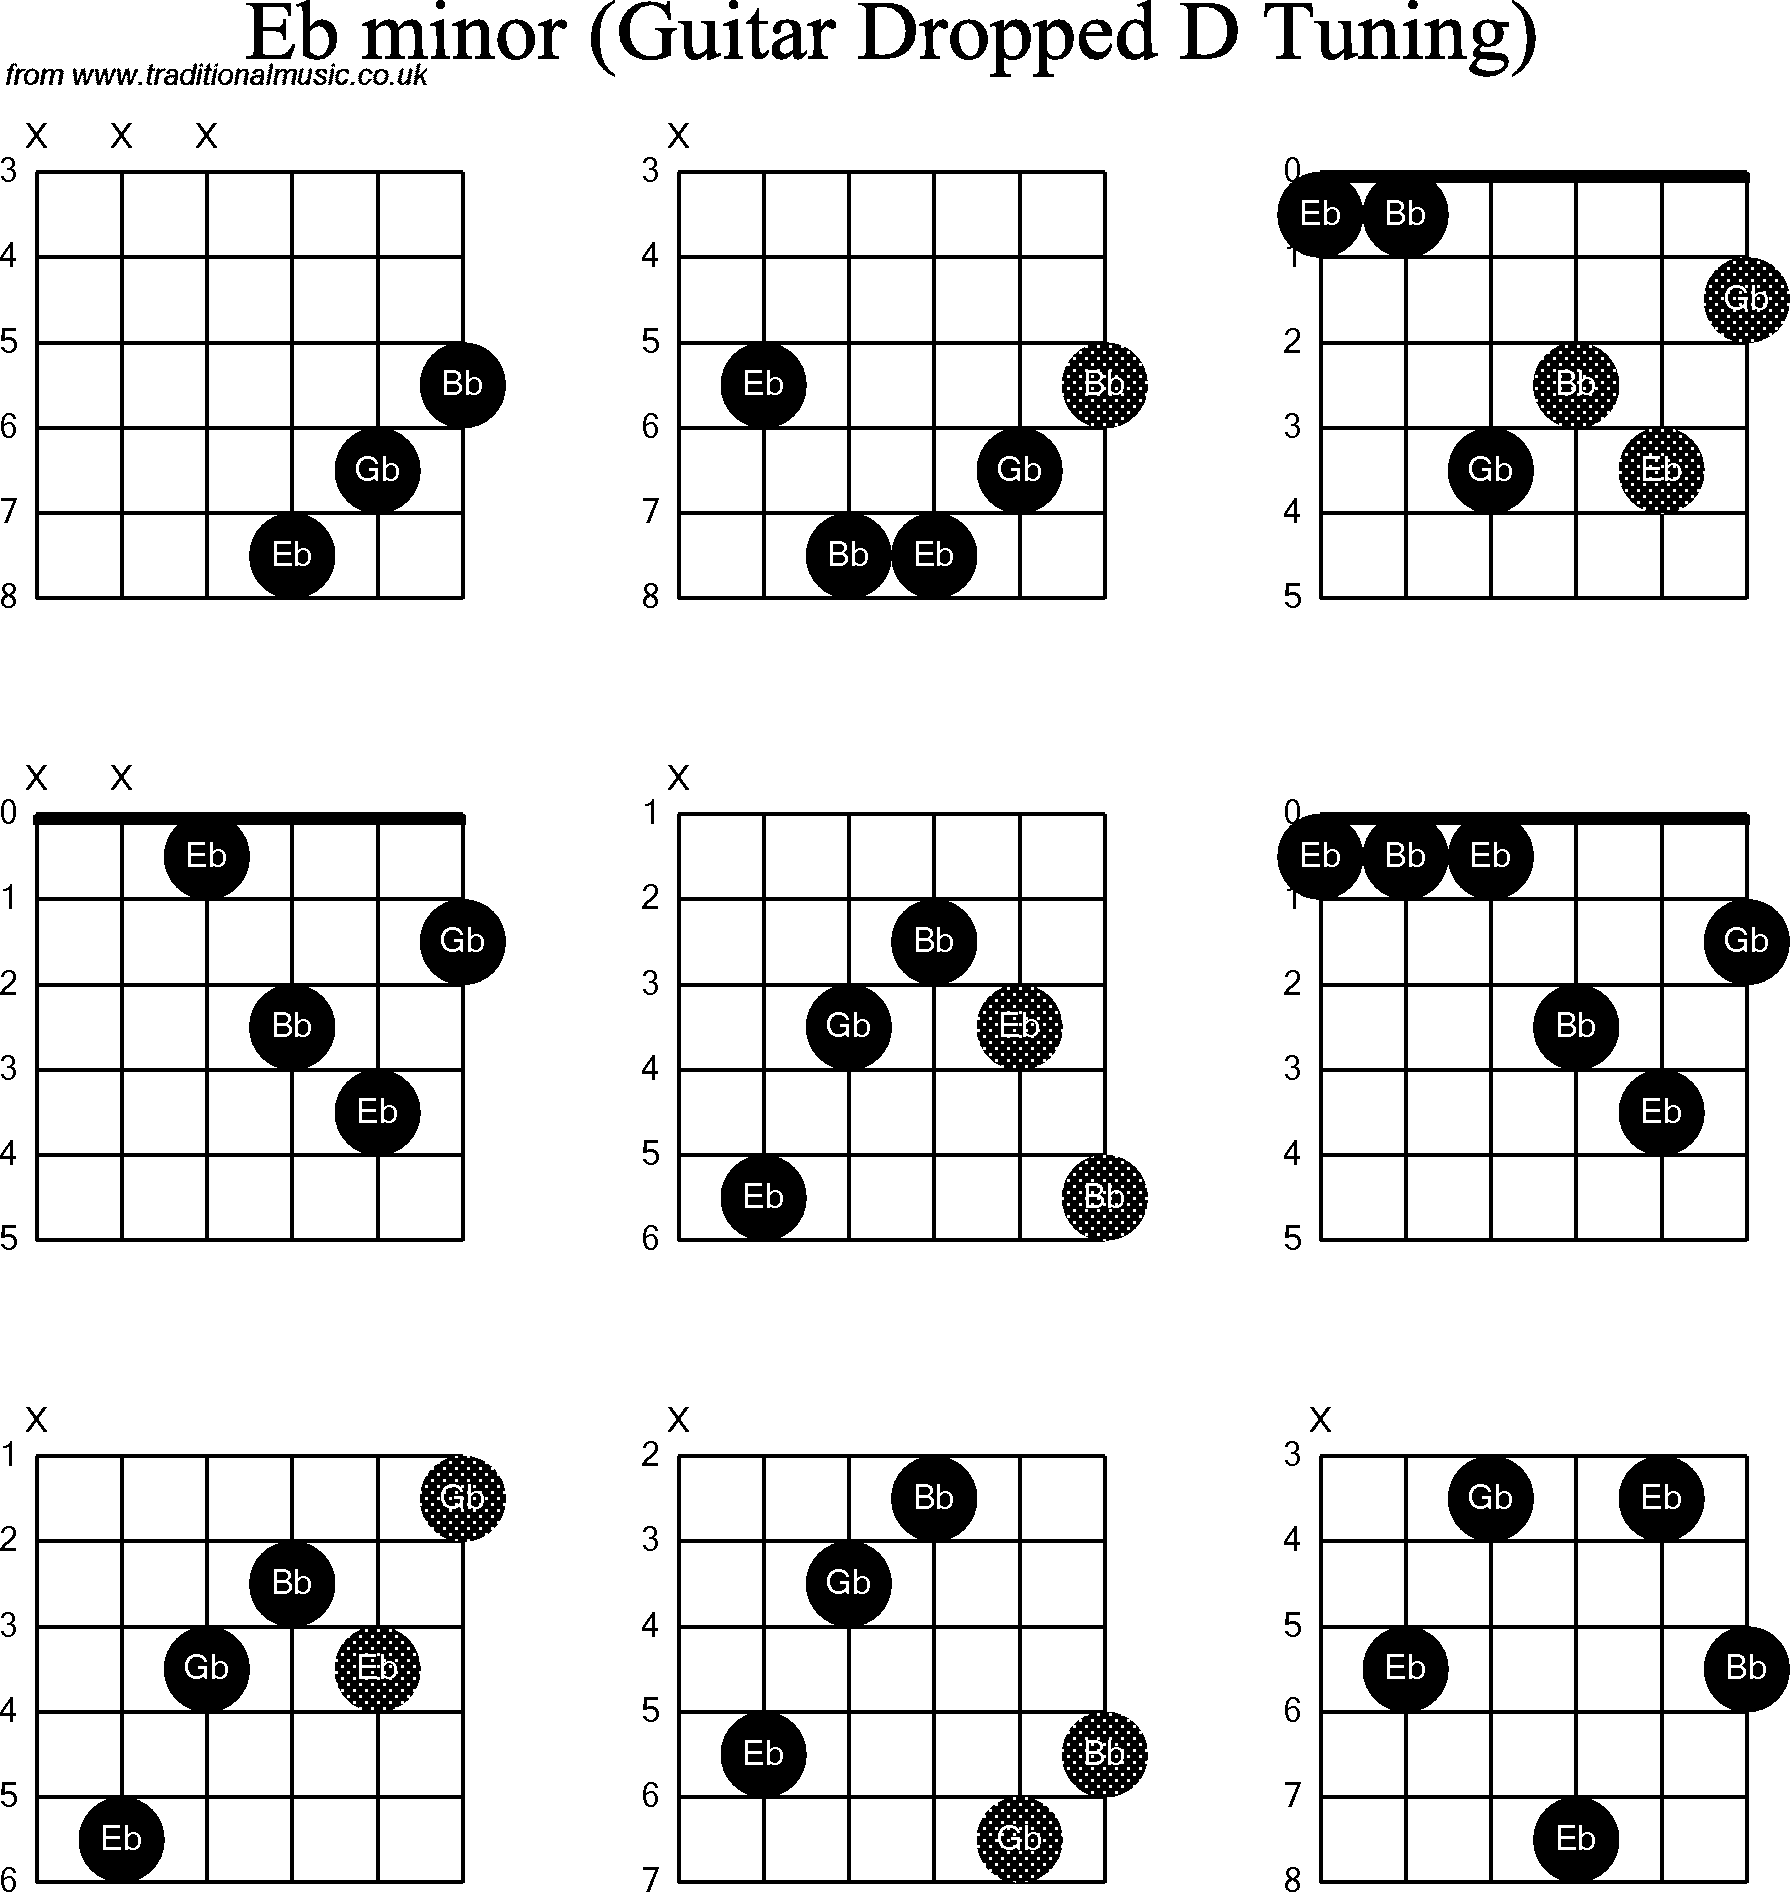 Chord Diagrams For Dropped D Guitardadgbe Eb Minor